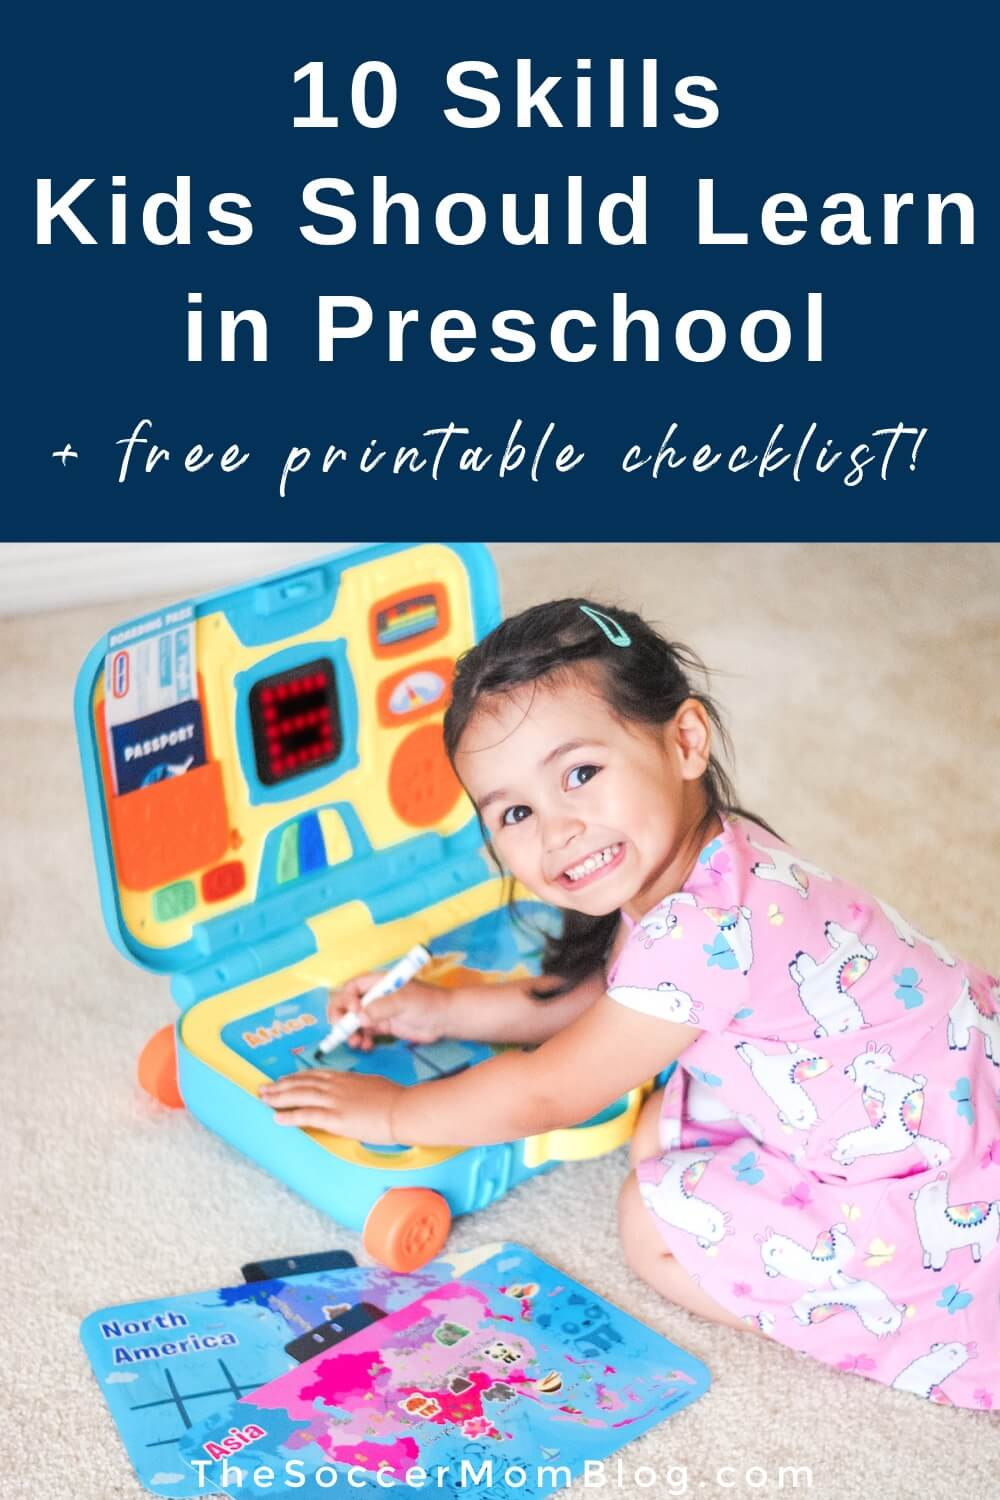 little girl playing with Learning Activity Suitcase